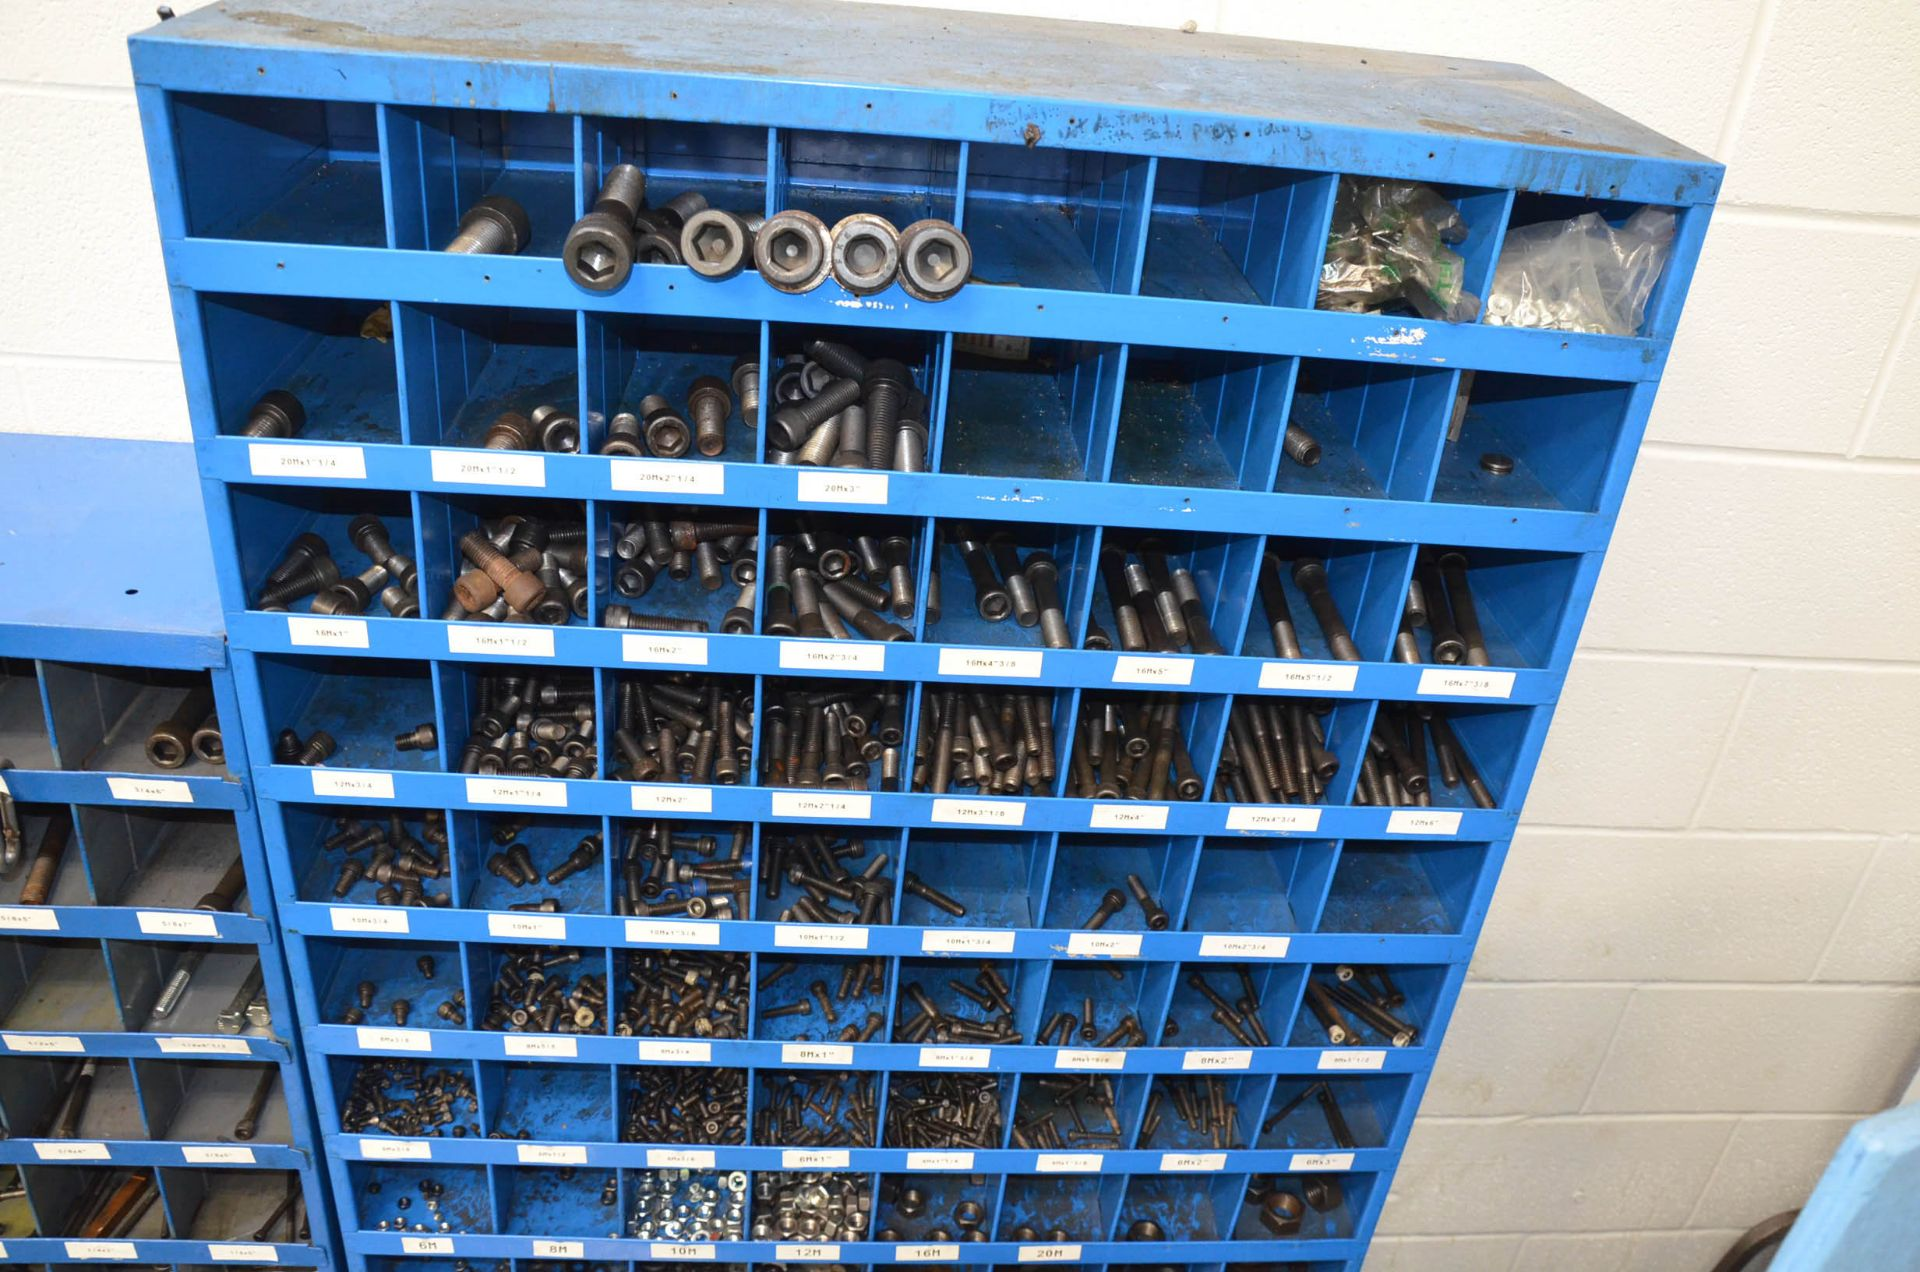 LOT/ FASTENAL PIGEON HOLE INDEX CABINETS WITH FASTENING HARDWARE AND STEEL WORK BENCH - Image 3 of 4